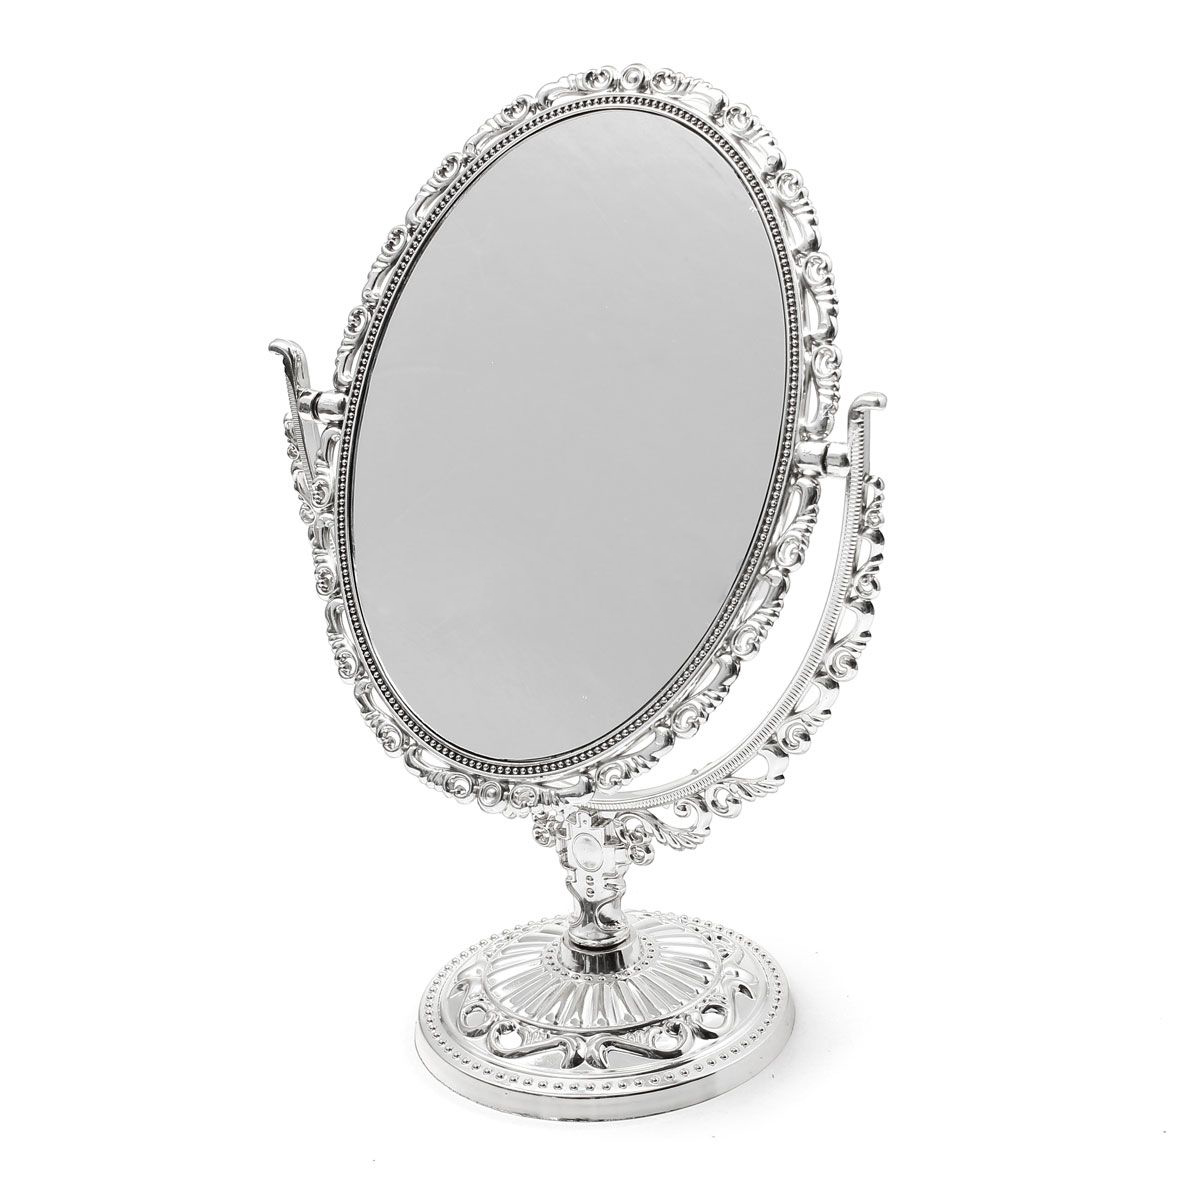 SILVER VANITY MAKE UP COSMETIC TABLE BATHROOM MIRROR ON FOOT STANDChina Mainland